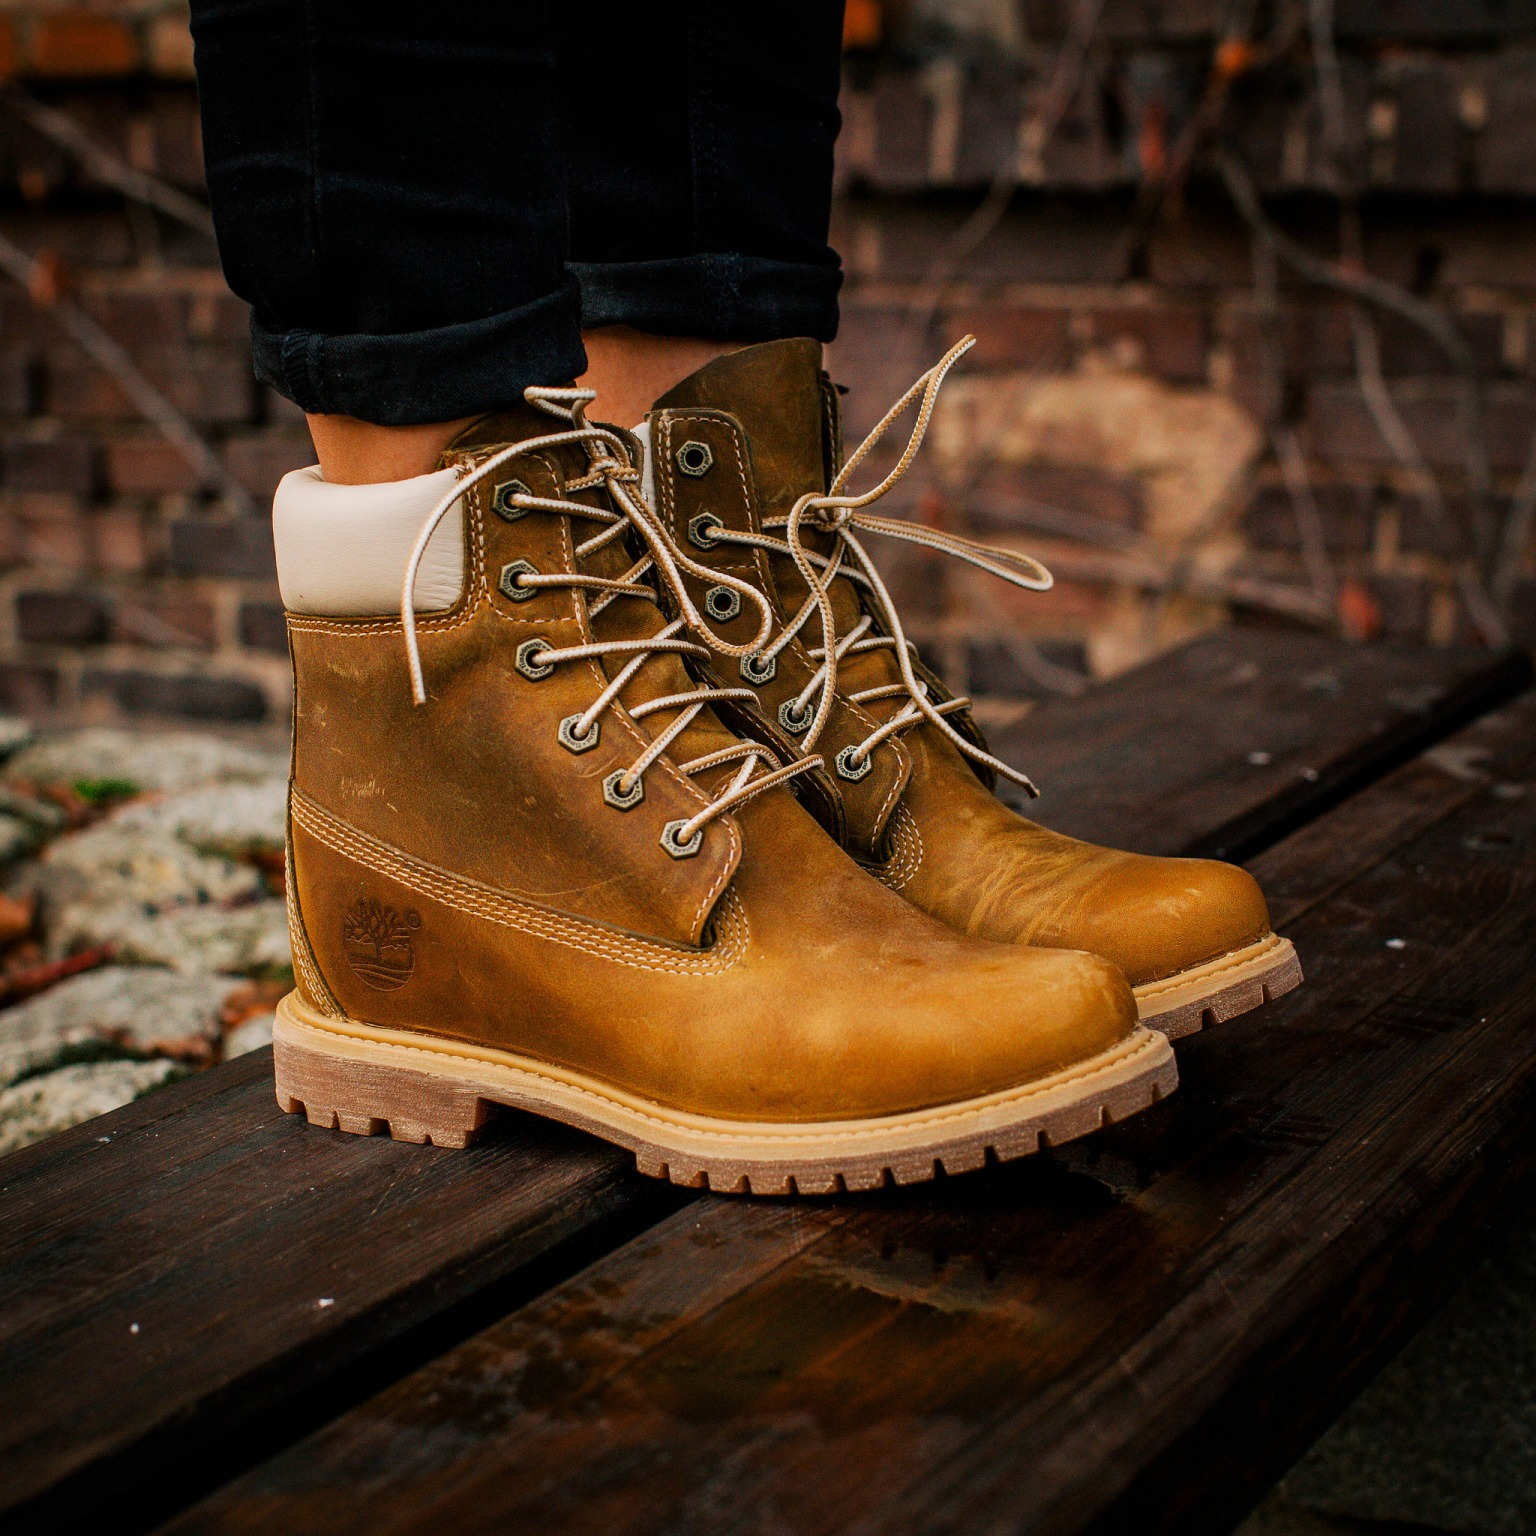 Timberland Brand Positioning and Communication Strategy